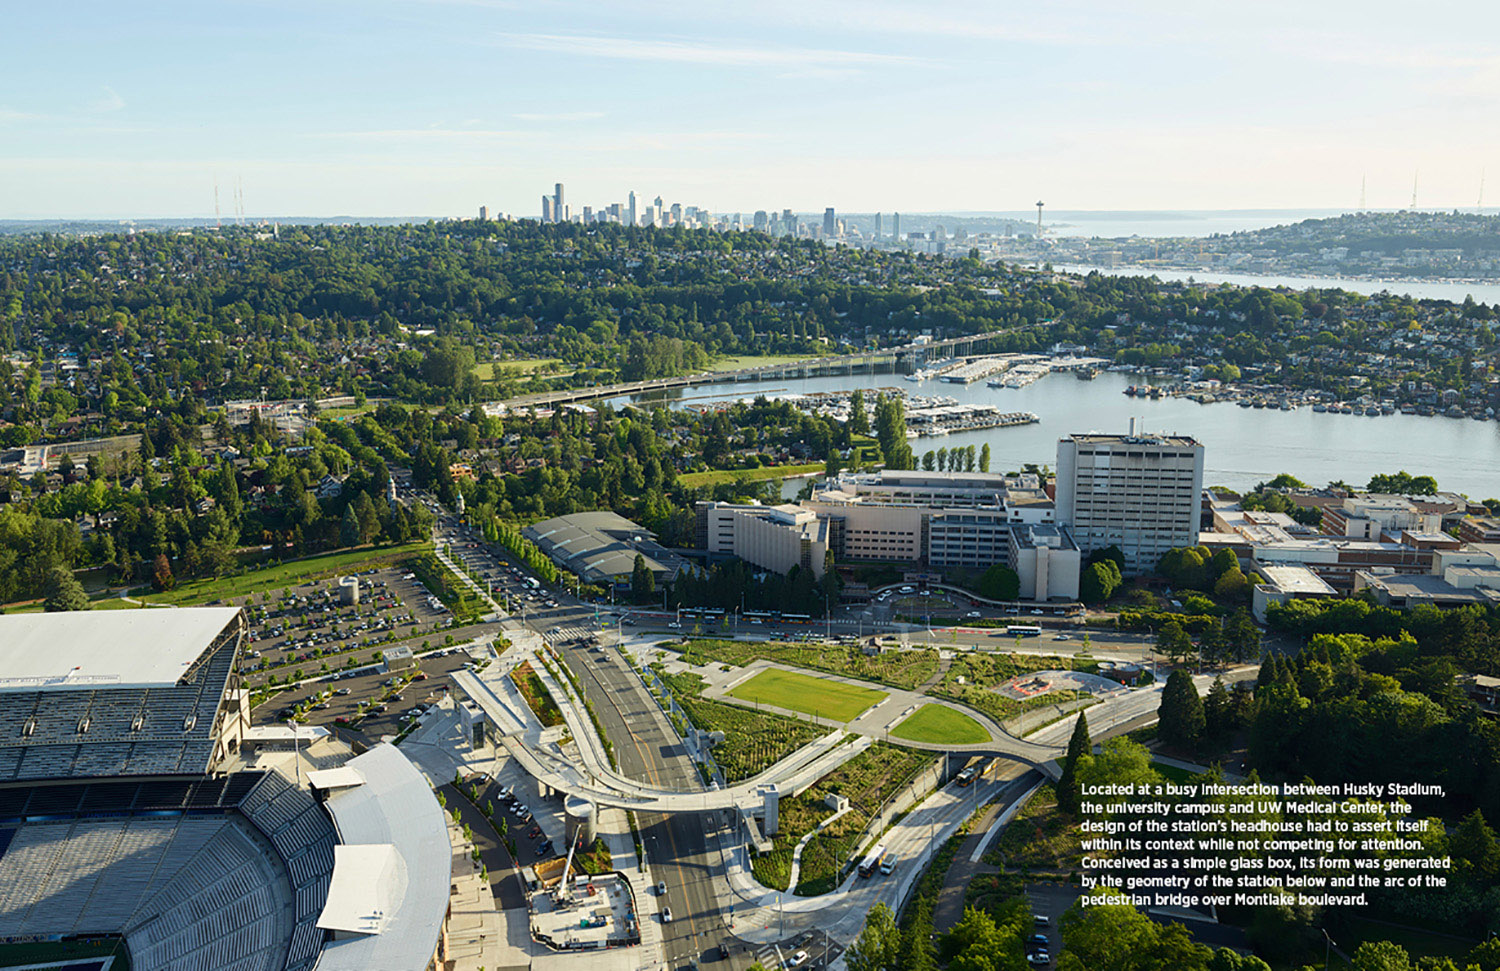 Located at a busy intersection between the university campus, Husky Stadium, and UW Medical Center, the design of the station's headhouse had to assert itself within its context while not competing for att Kevin Scott}